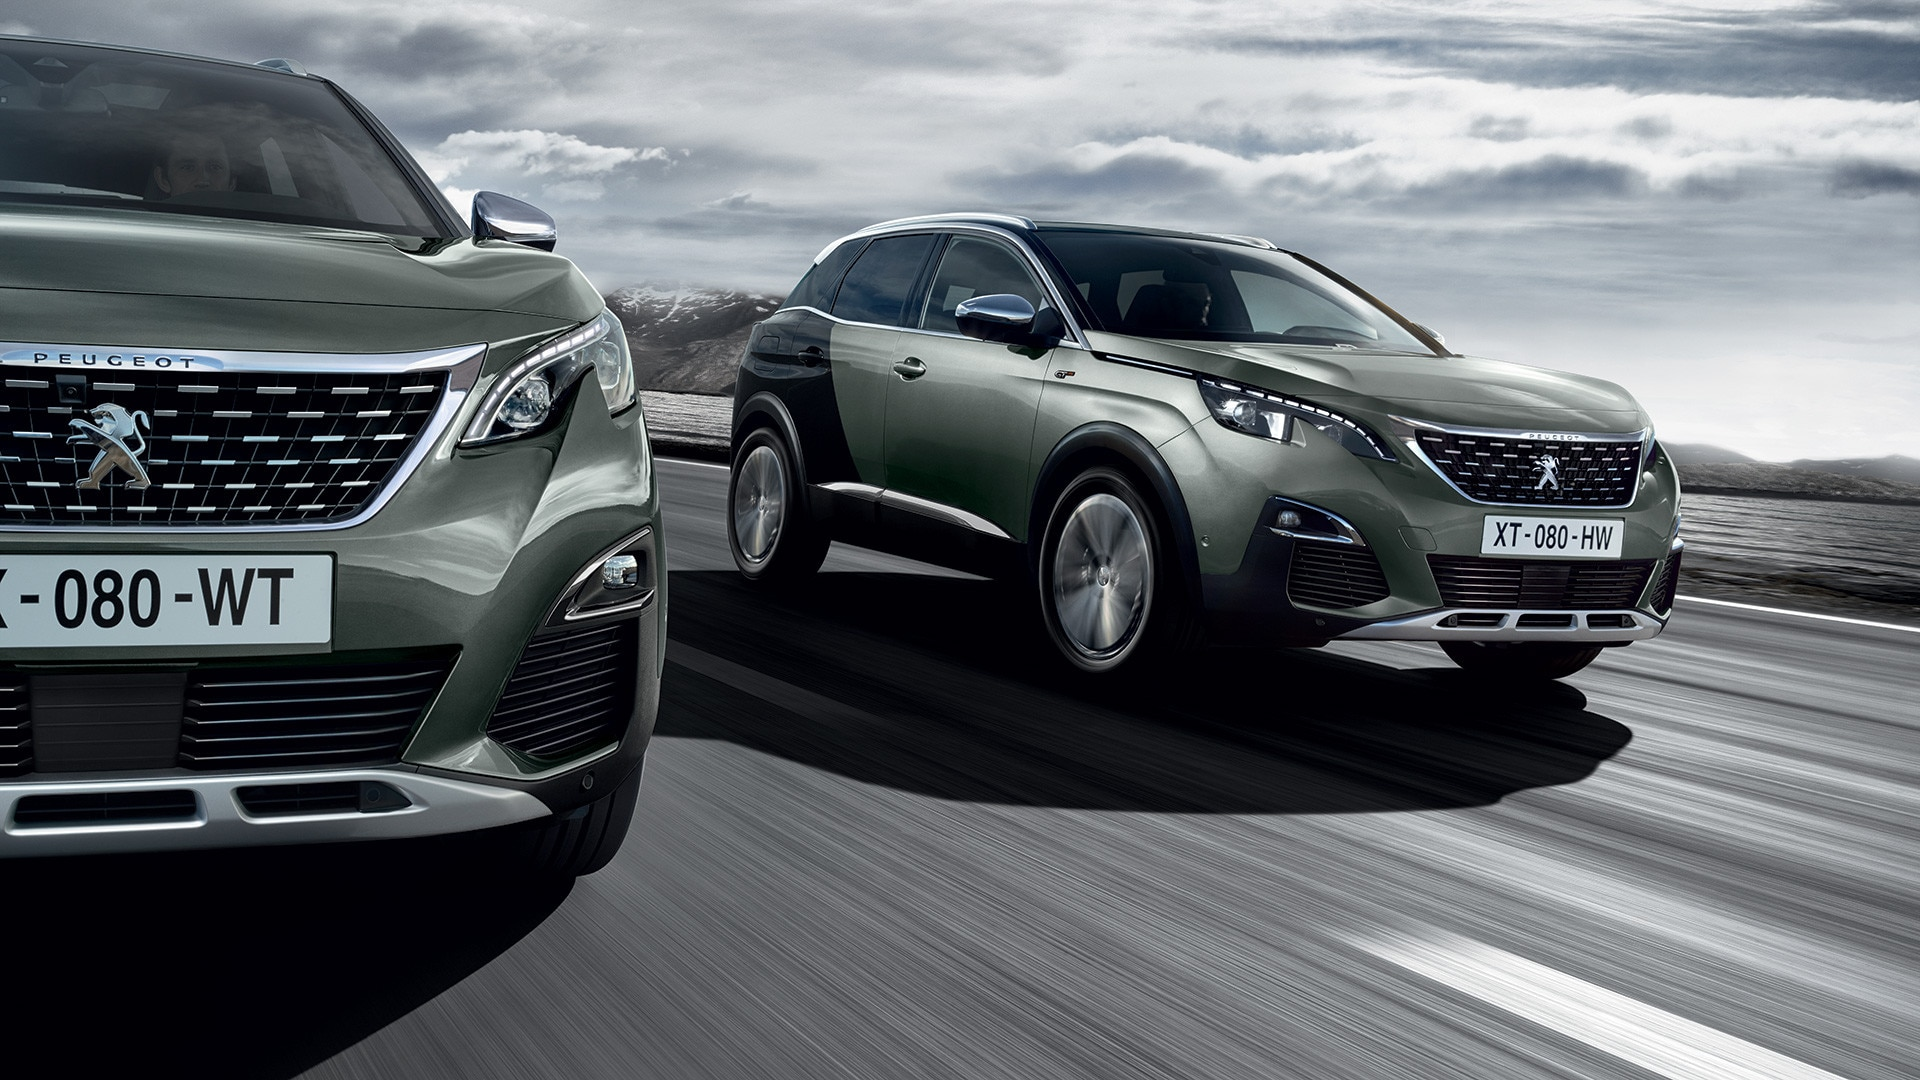 Peugeot 3008 New Car Showroom Suv Gt Test Drive Today